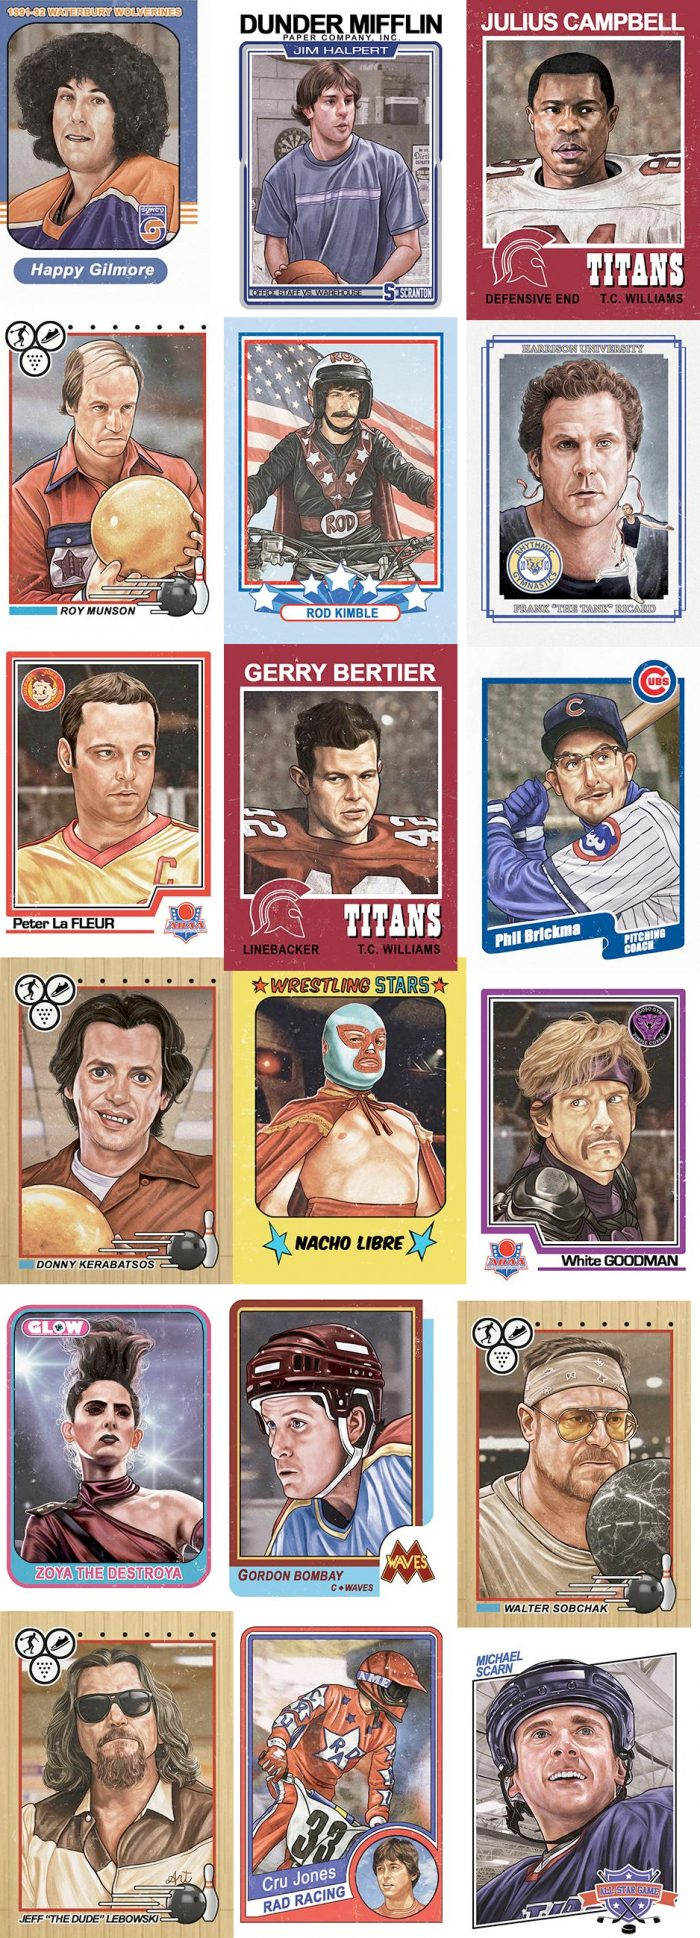 Gallery 1988 Cuyler Smith Trading Cards 3